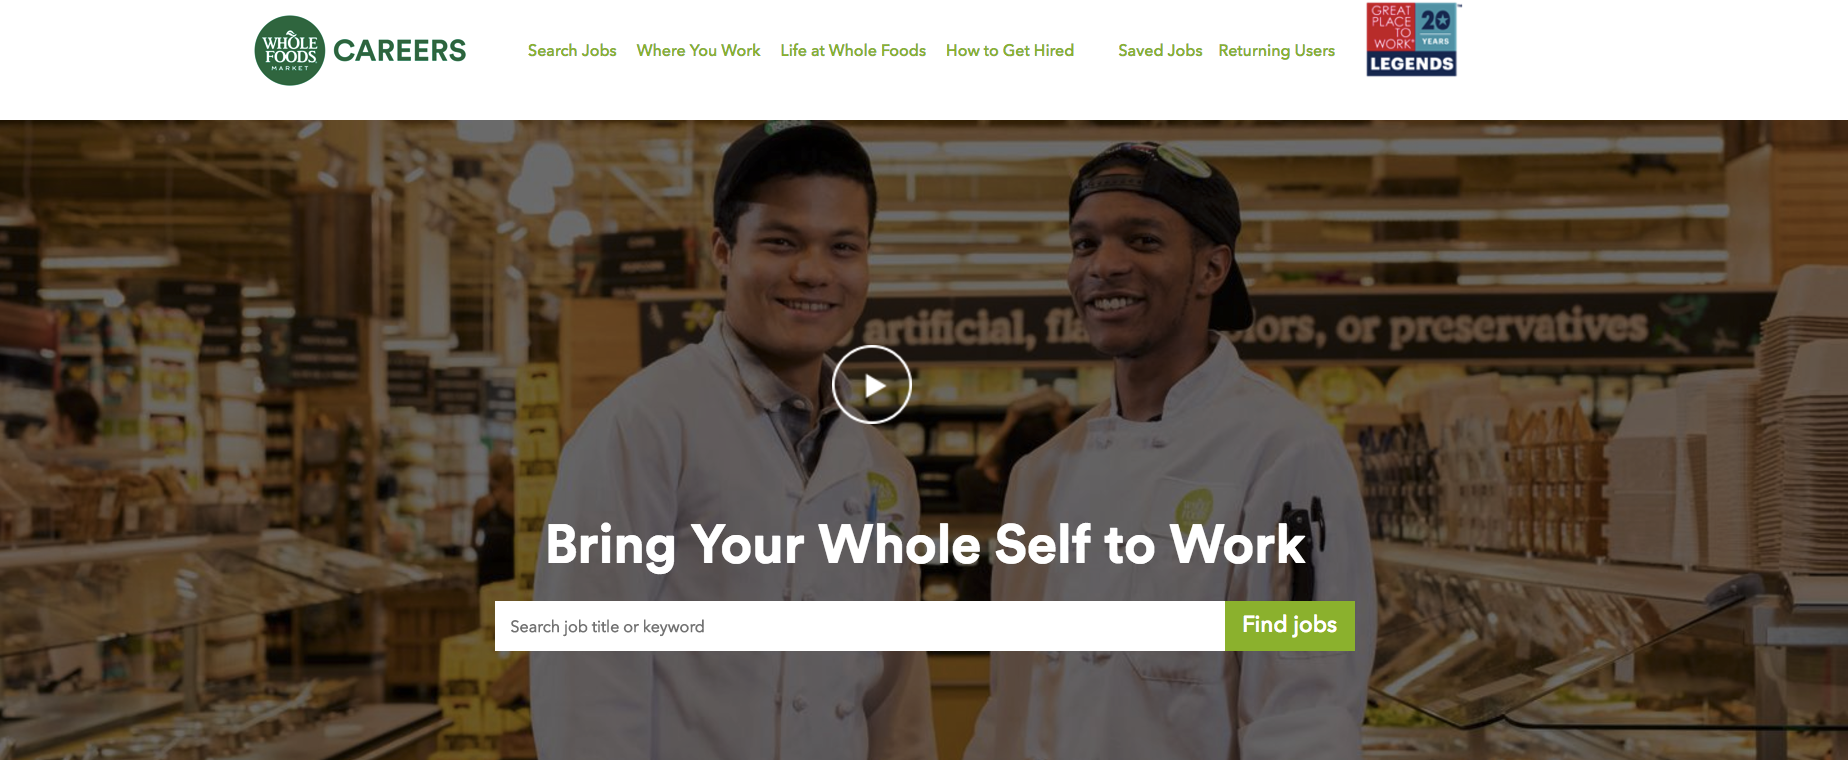 Whole Foods career site's homepage